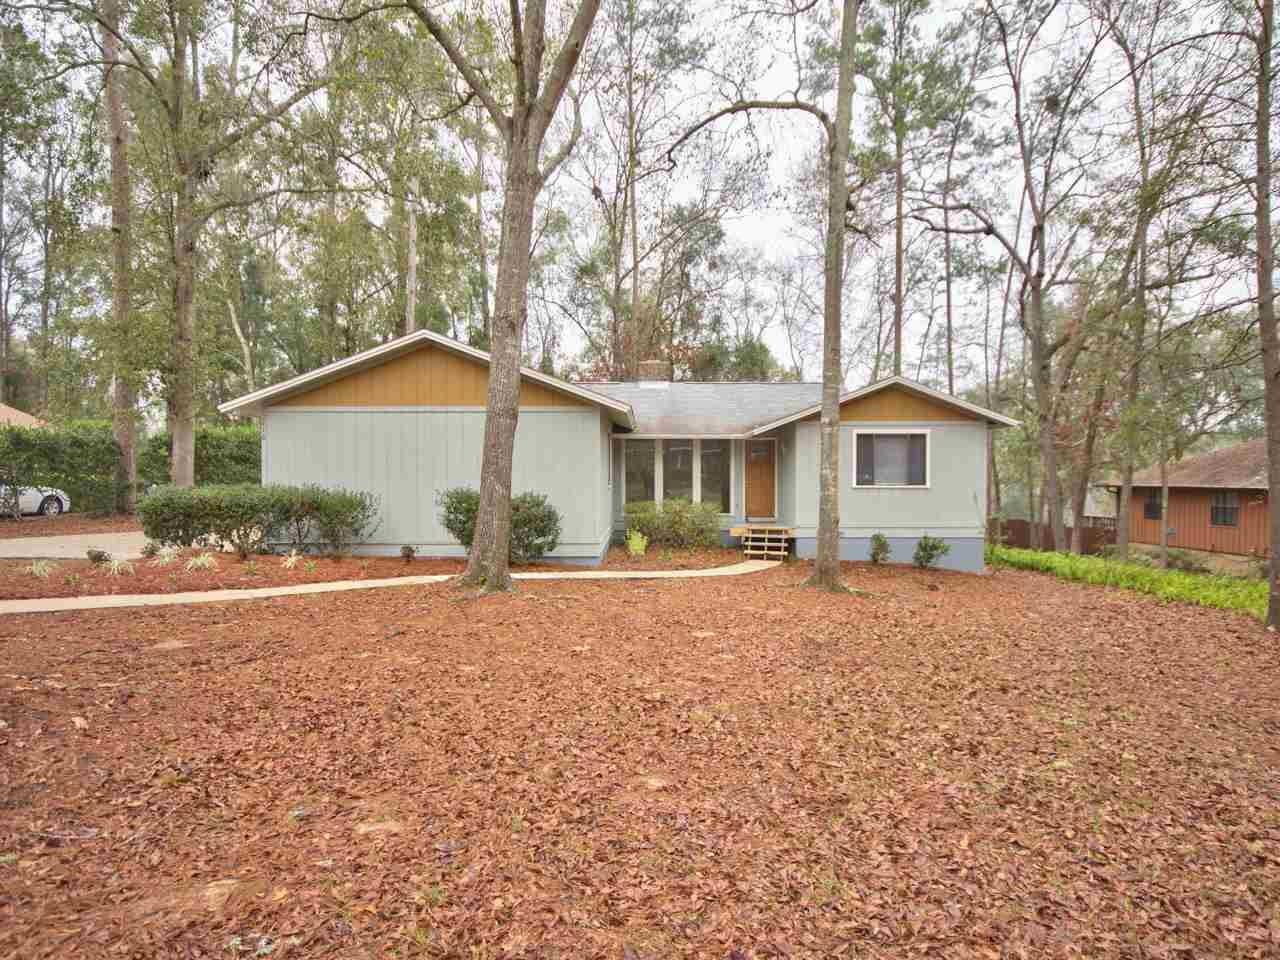 Photo for 3216 Beaumont Drive, TALLAHASSEE, FL 32309 (MLS # 314485)